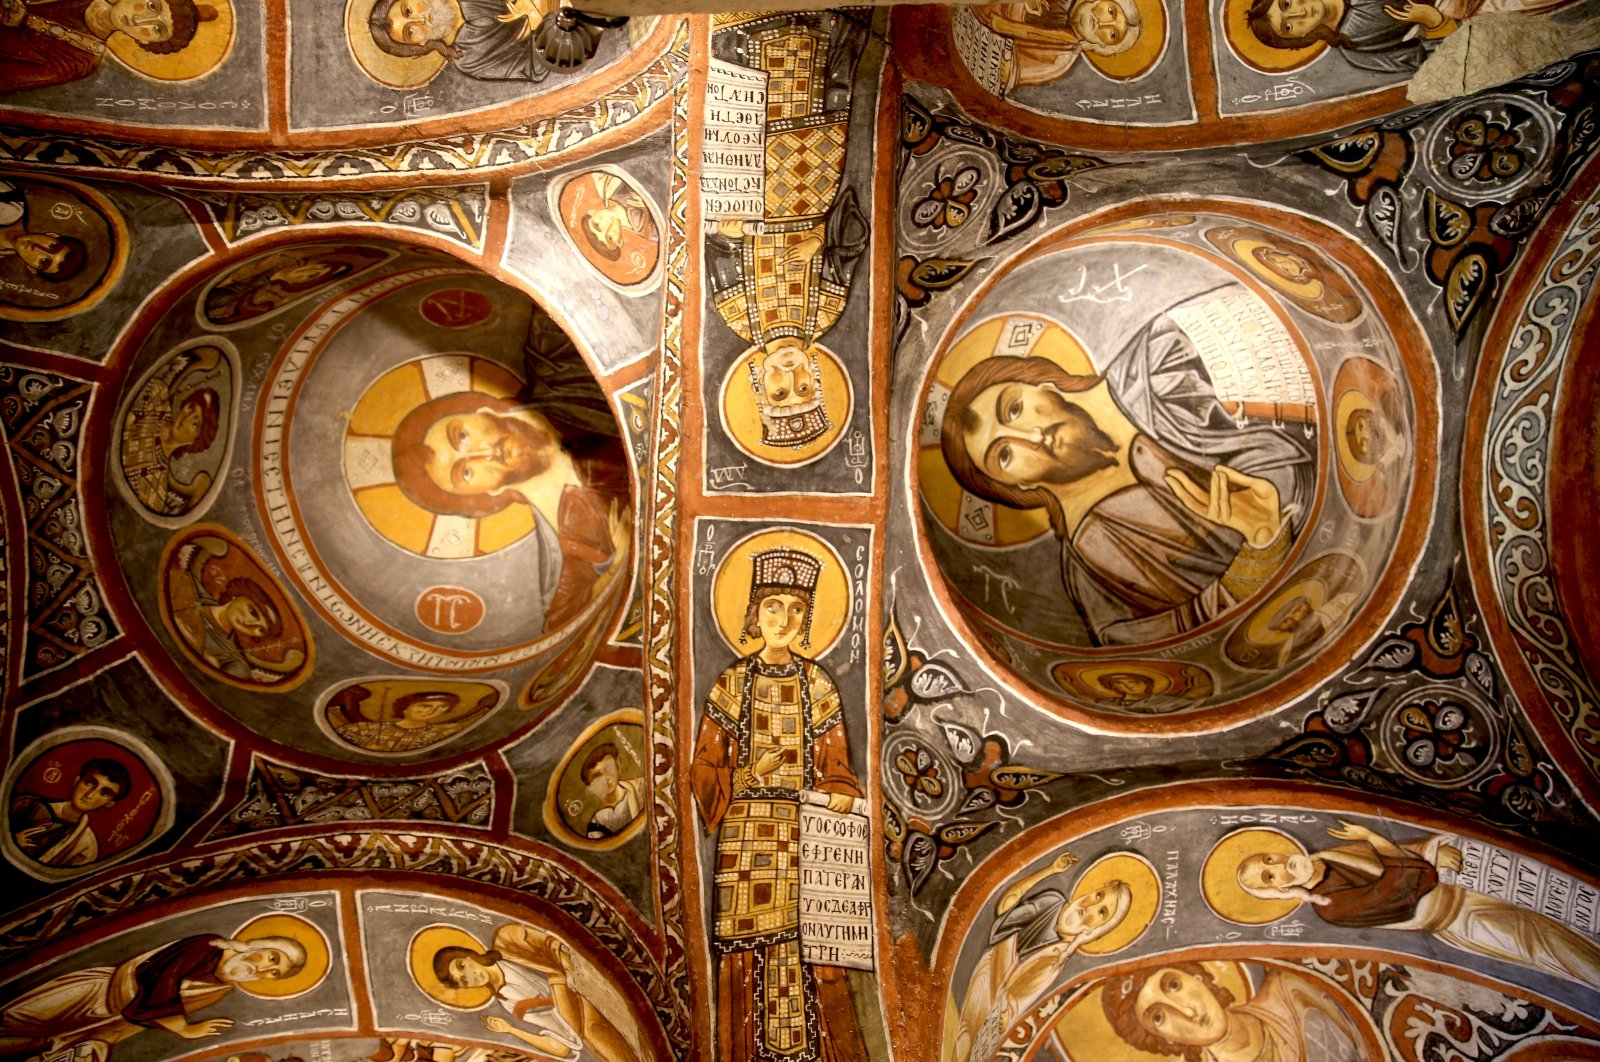 Frescoes depicting Jesus at the church, Cappadocia, central Turkey, Aug. 3, 2020. (AA PHOTO)